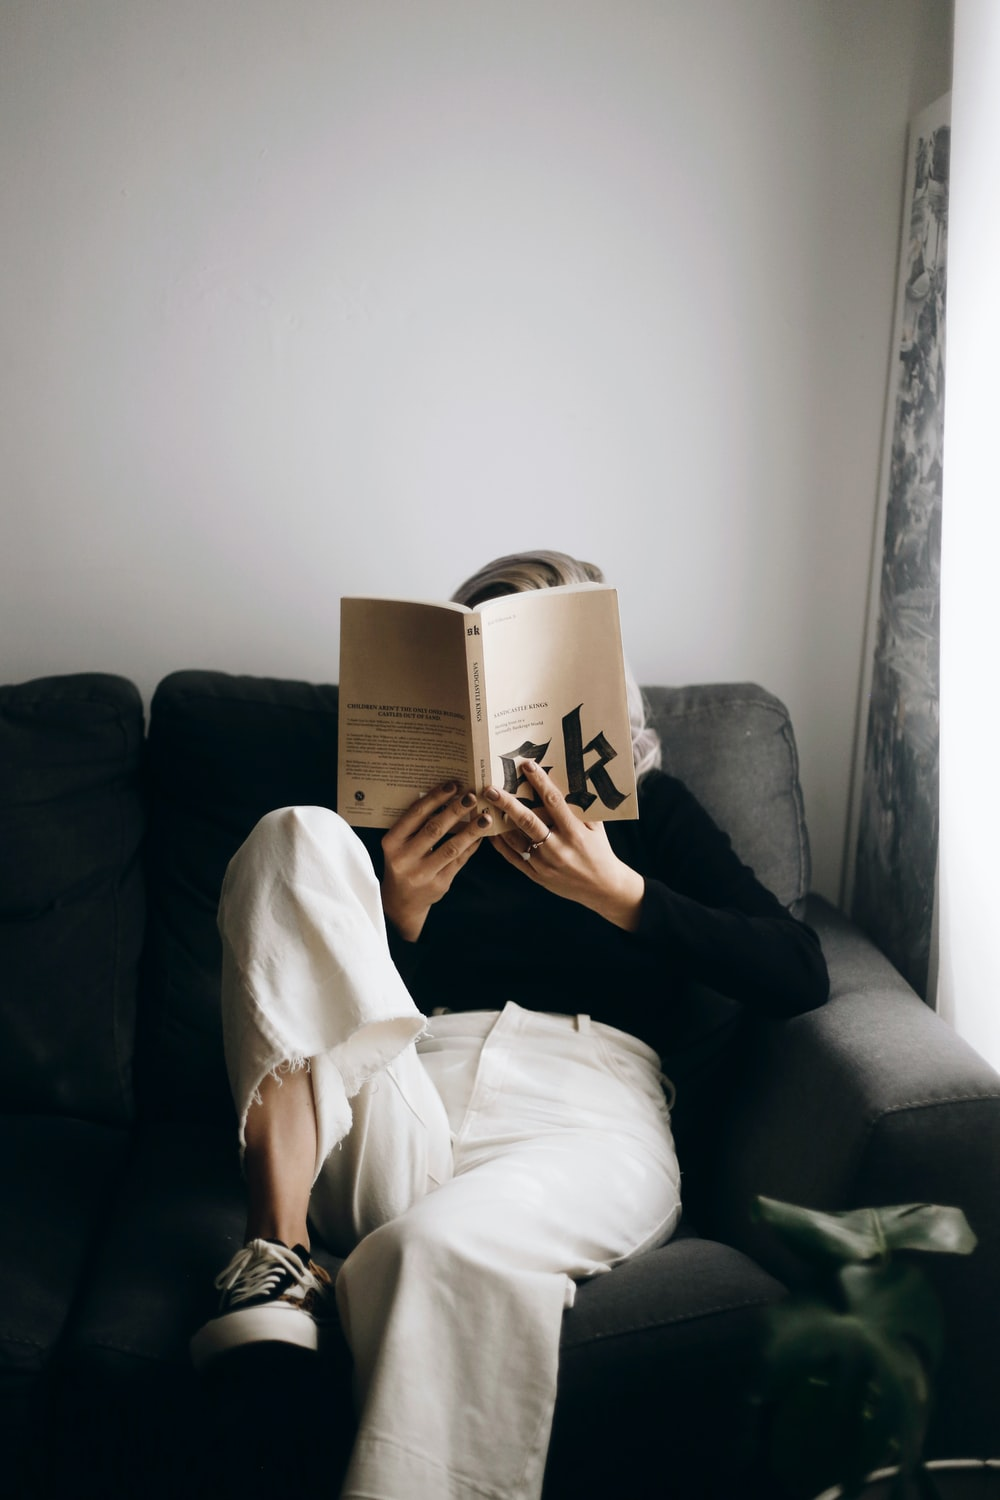 woman in white shirt reading book sitting on black sofa